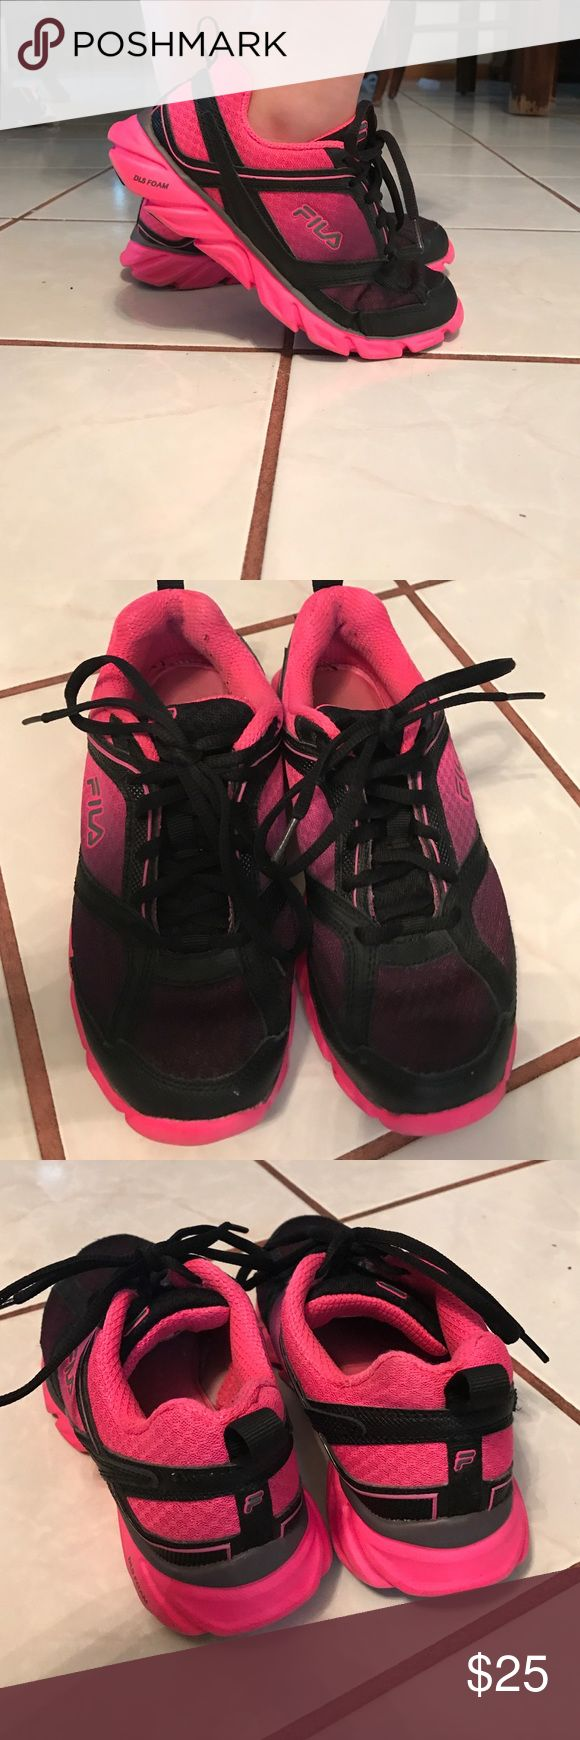 FILA Running Shoes FILA Black/Hot Pink Running Shoes. Used... great condition. Minor signs of wear as shown in photo. Size 6. Fila Shoes Athletic Shoes